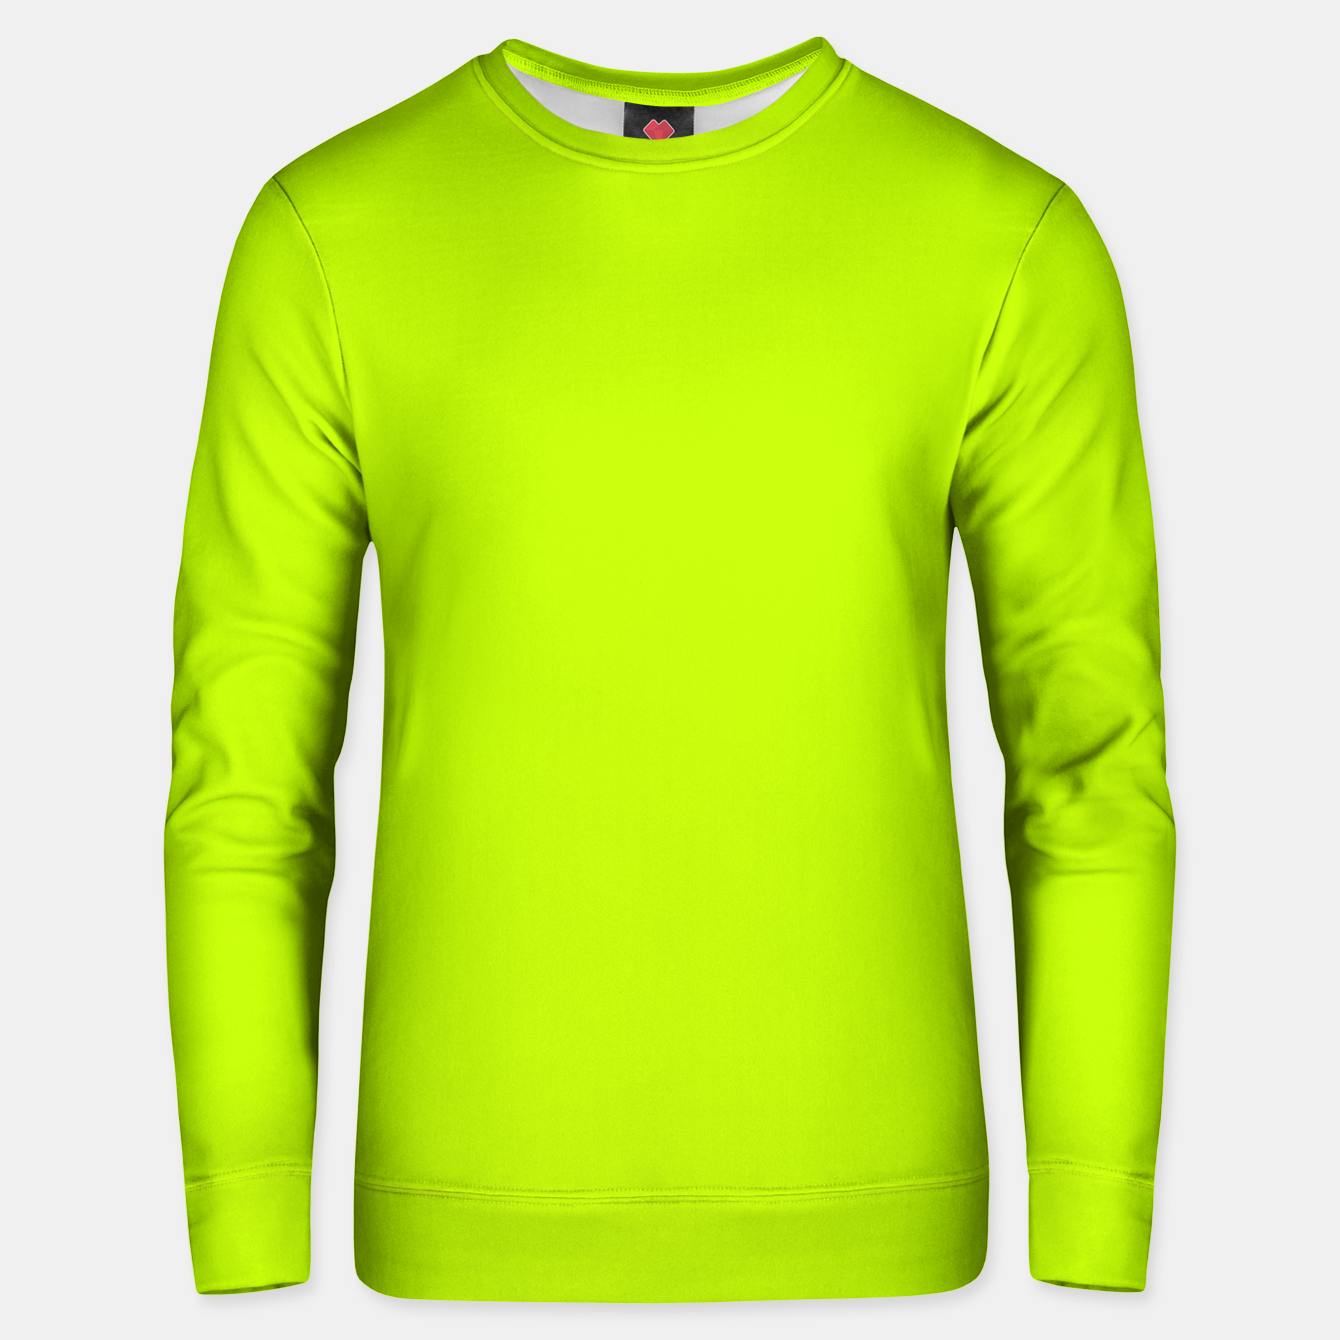 Foto Bitter Lime Neon Green Yellow Solid Color Unisex sweater - Live Heroes